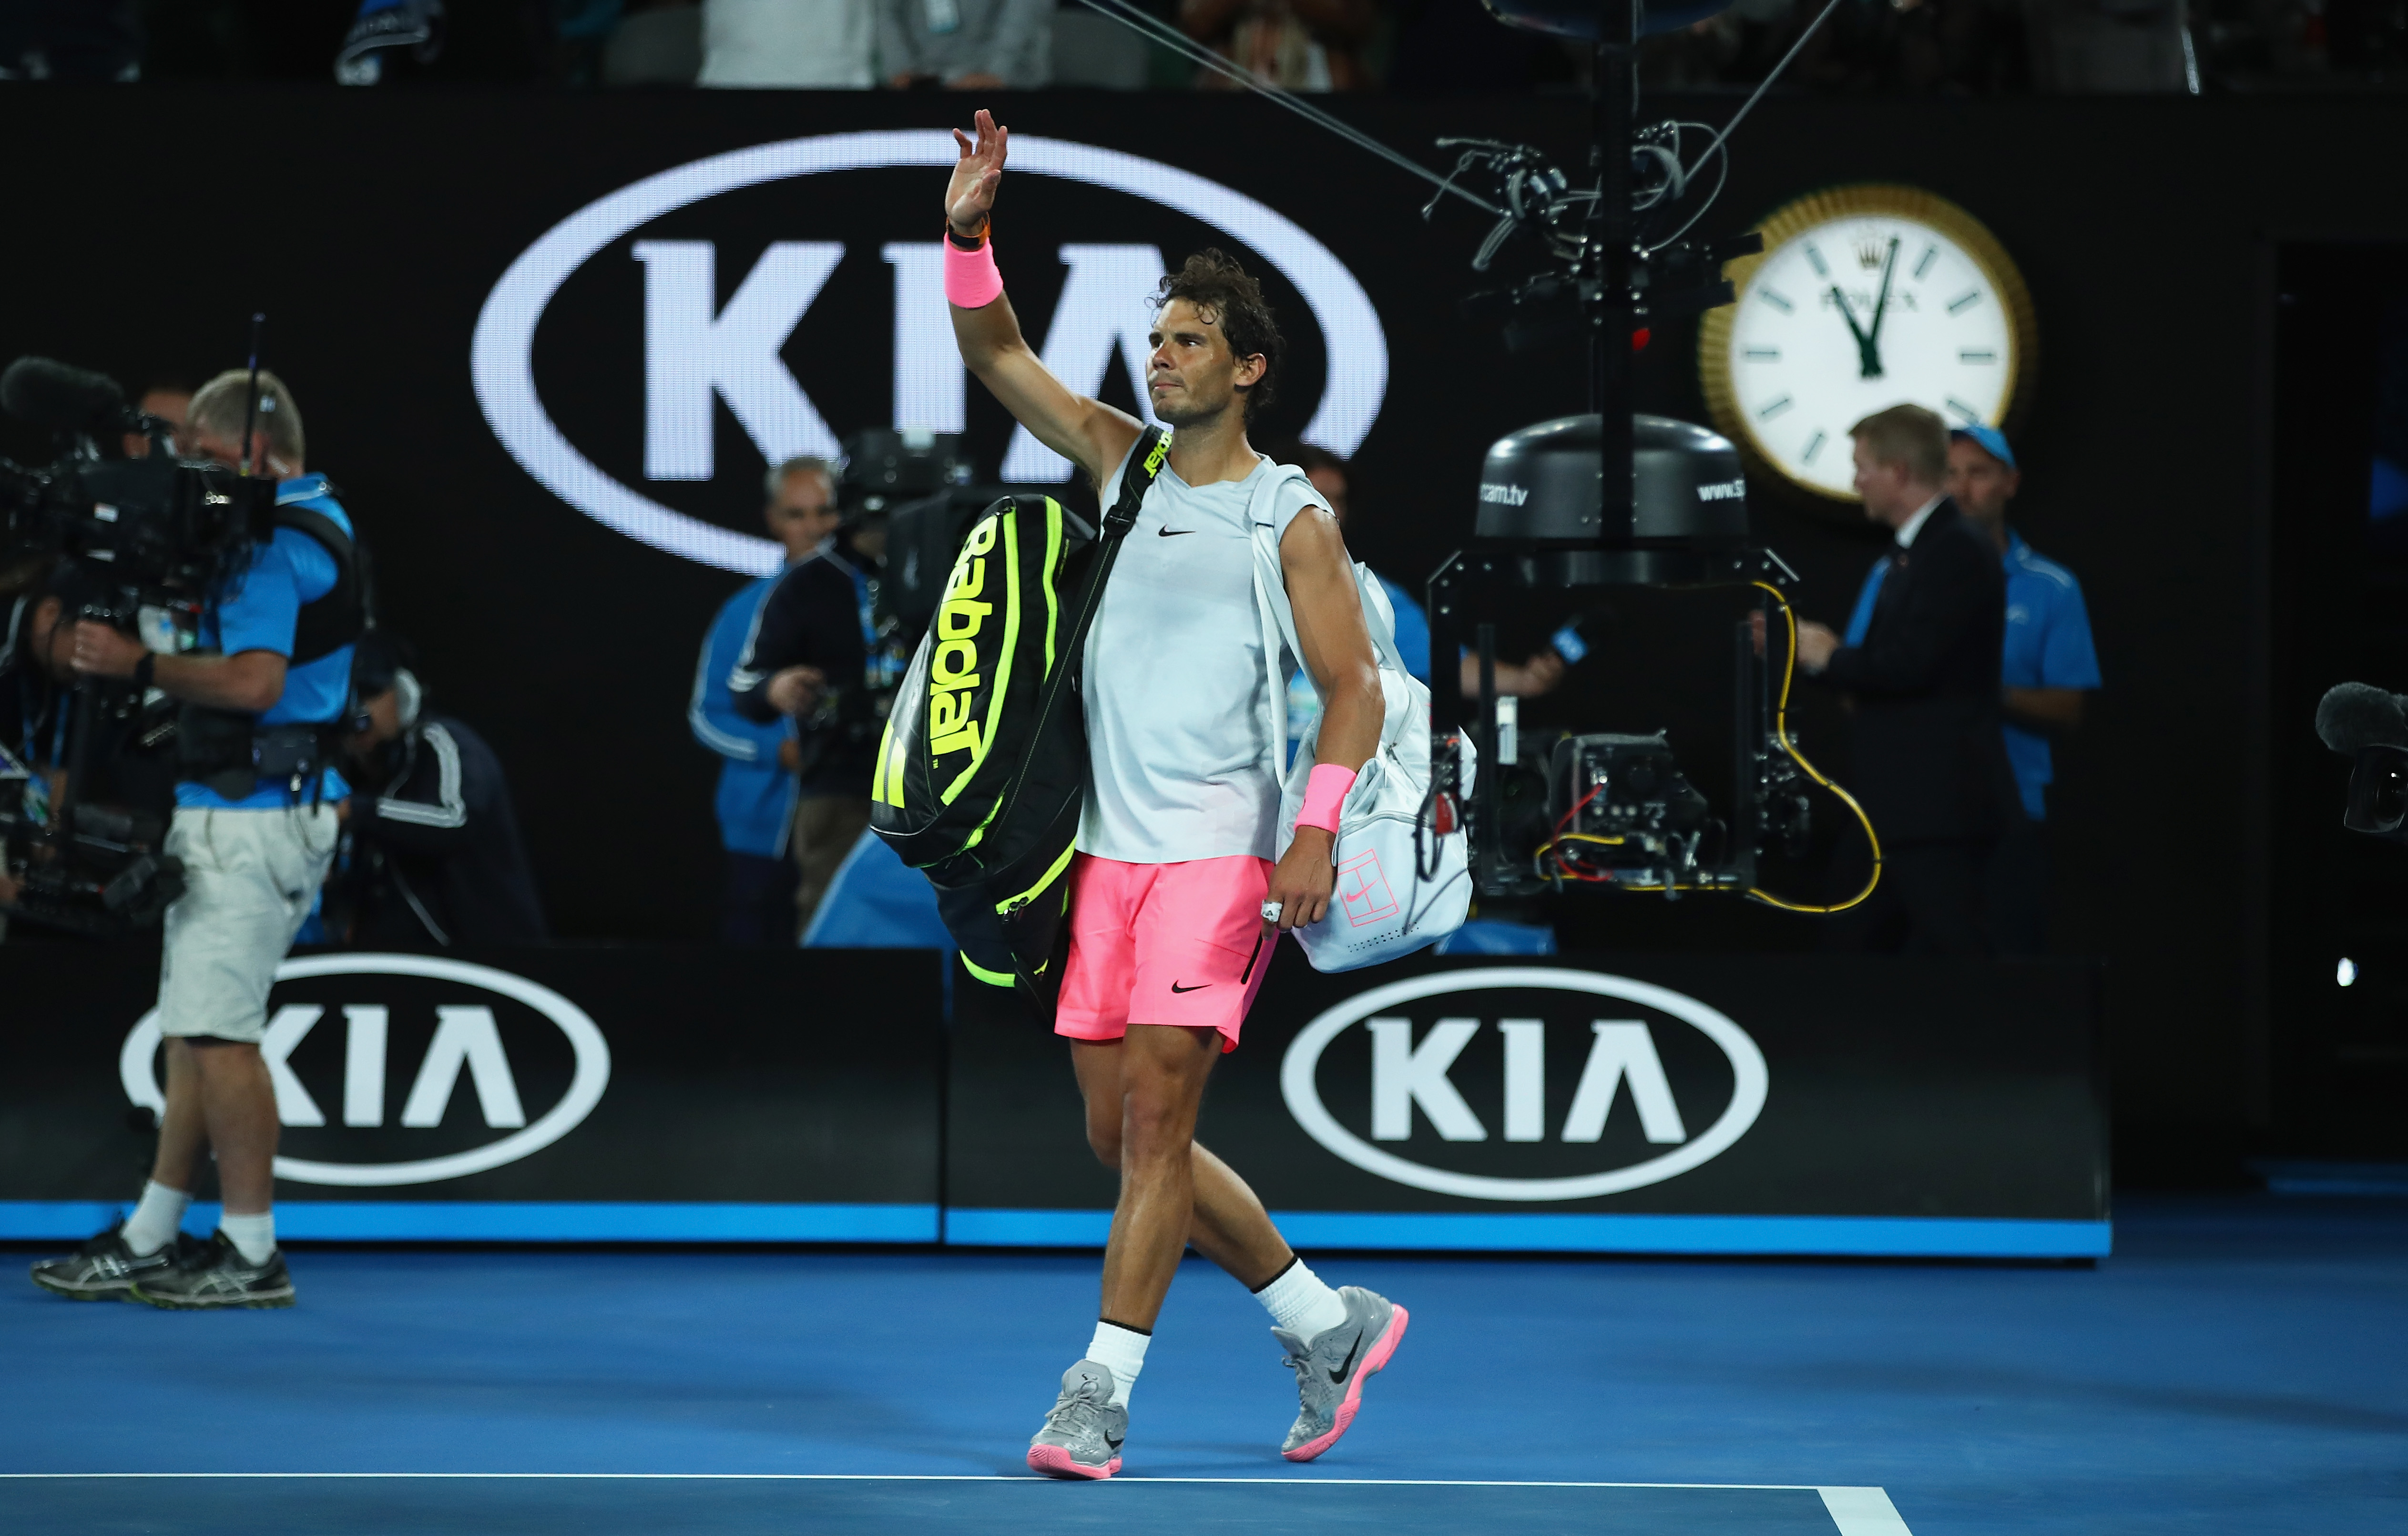 Federer snuffs out Struff to progress in Australian Open